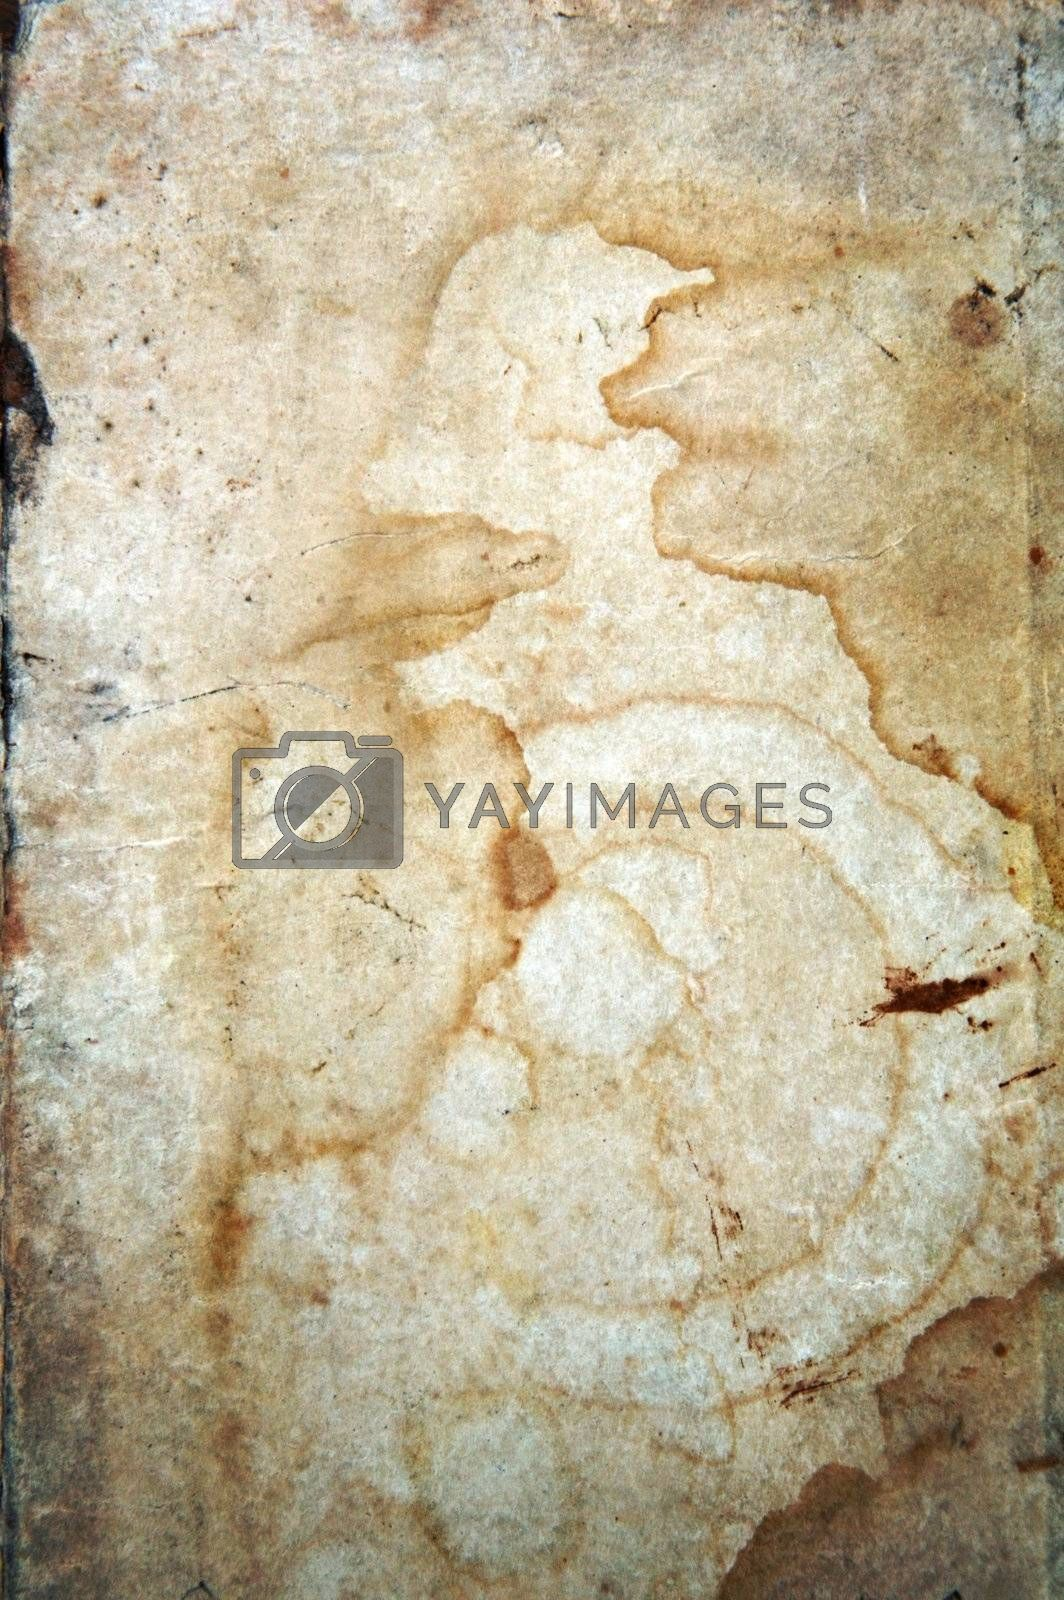 Old ancient book cover - parchment paper texture background